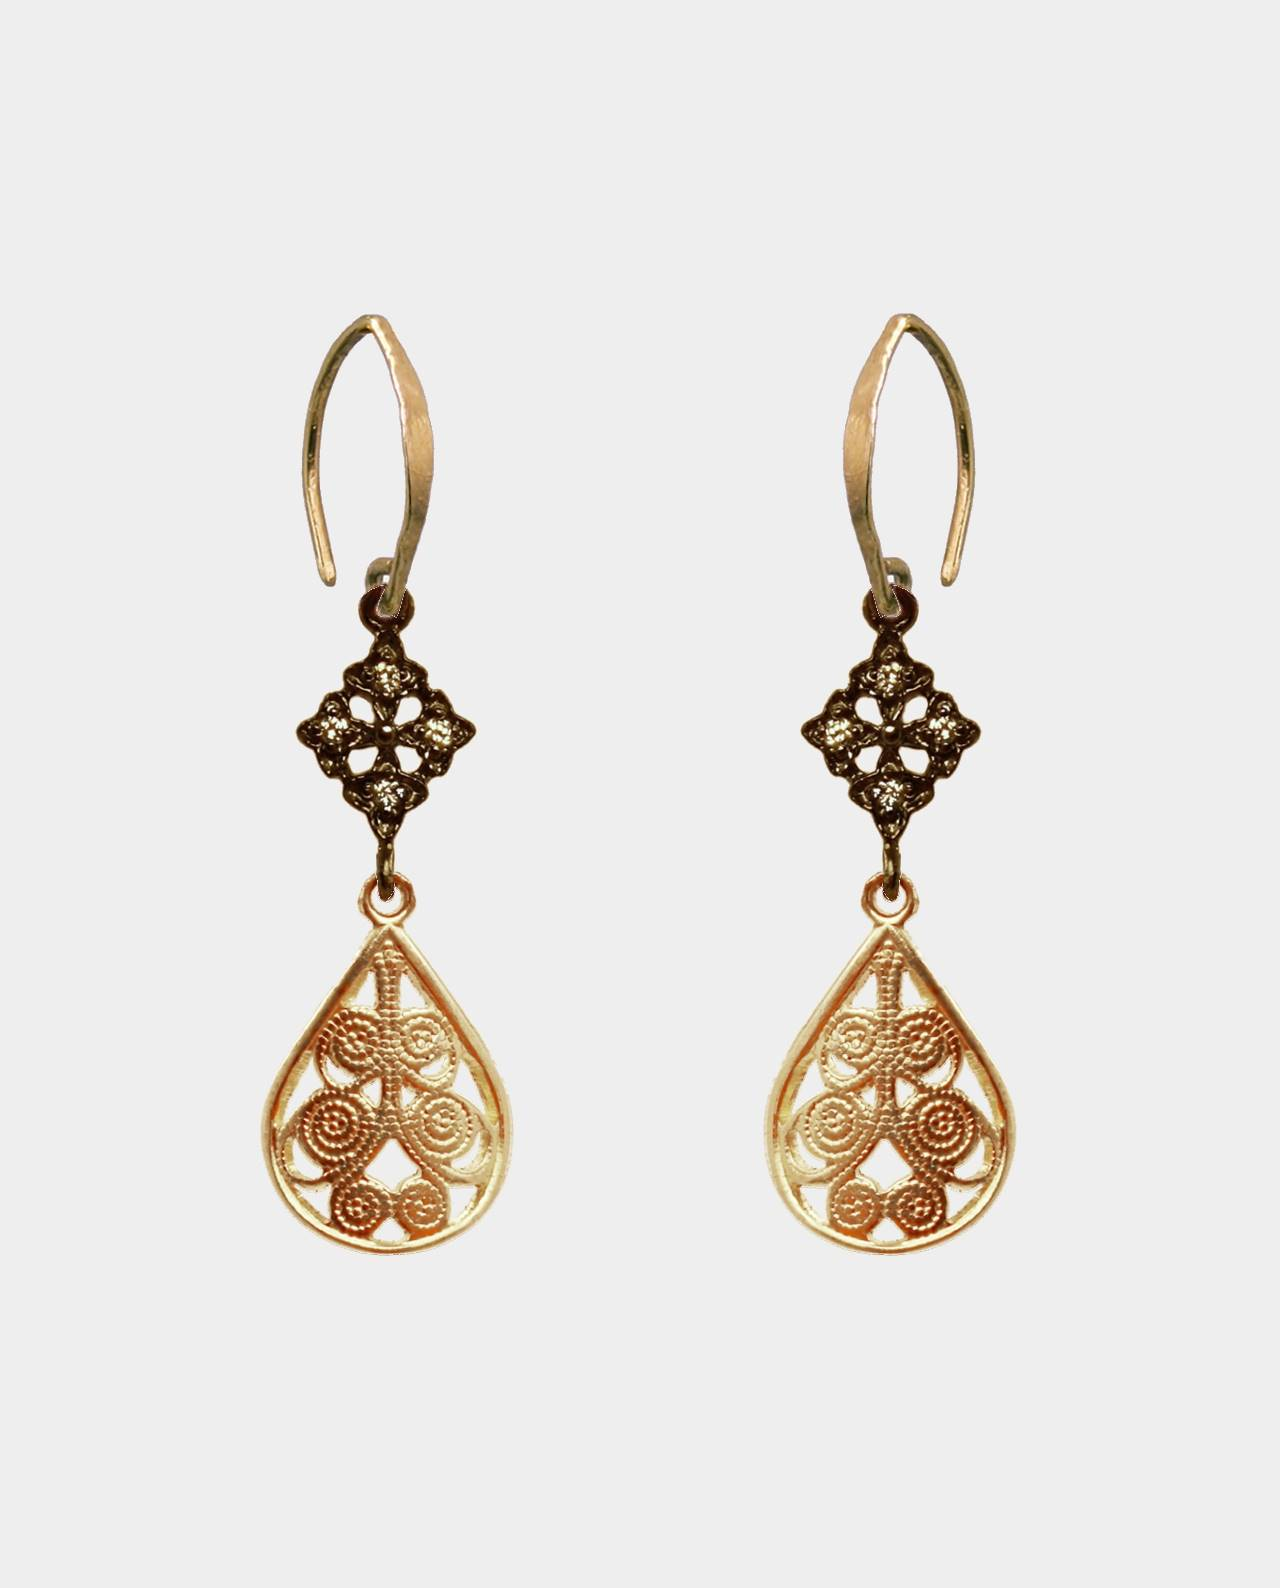 Earrings with zirconia crosses and rustic ear hooks and filigree ornamented pendants like the jewelers of Ancient Rome